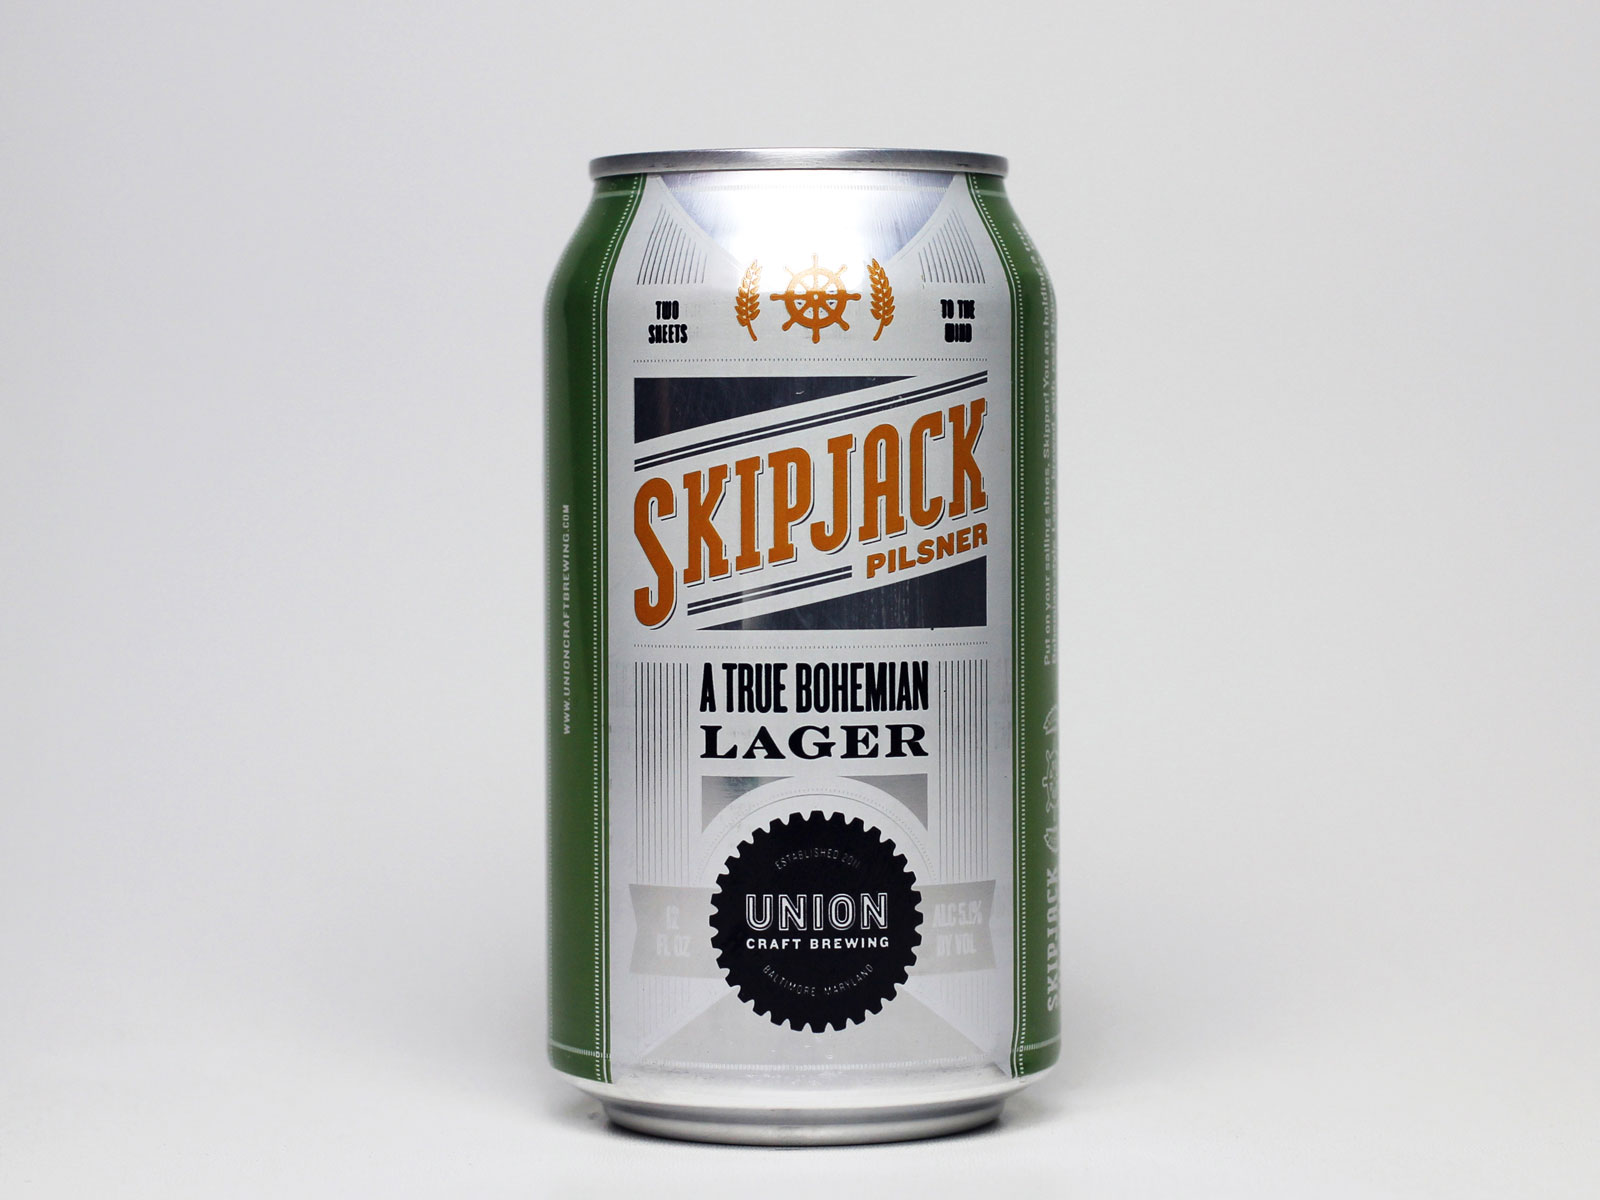 Skipjack by Union Craft Brewing